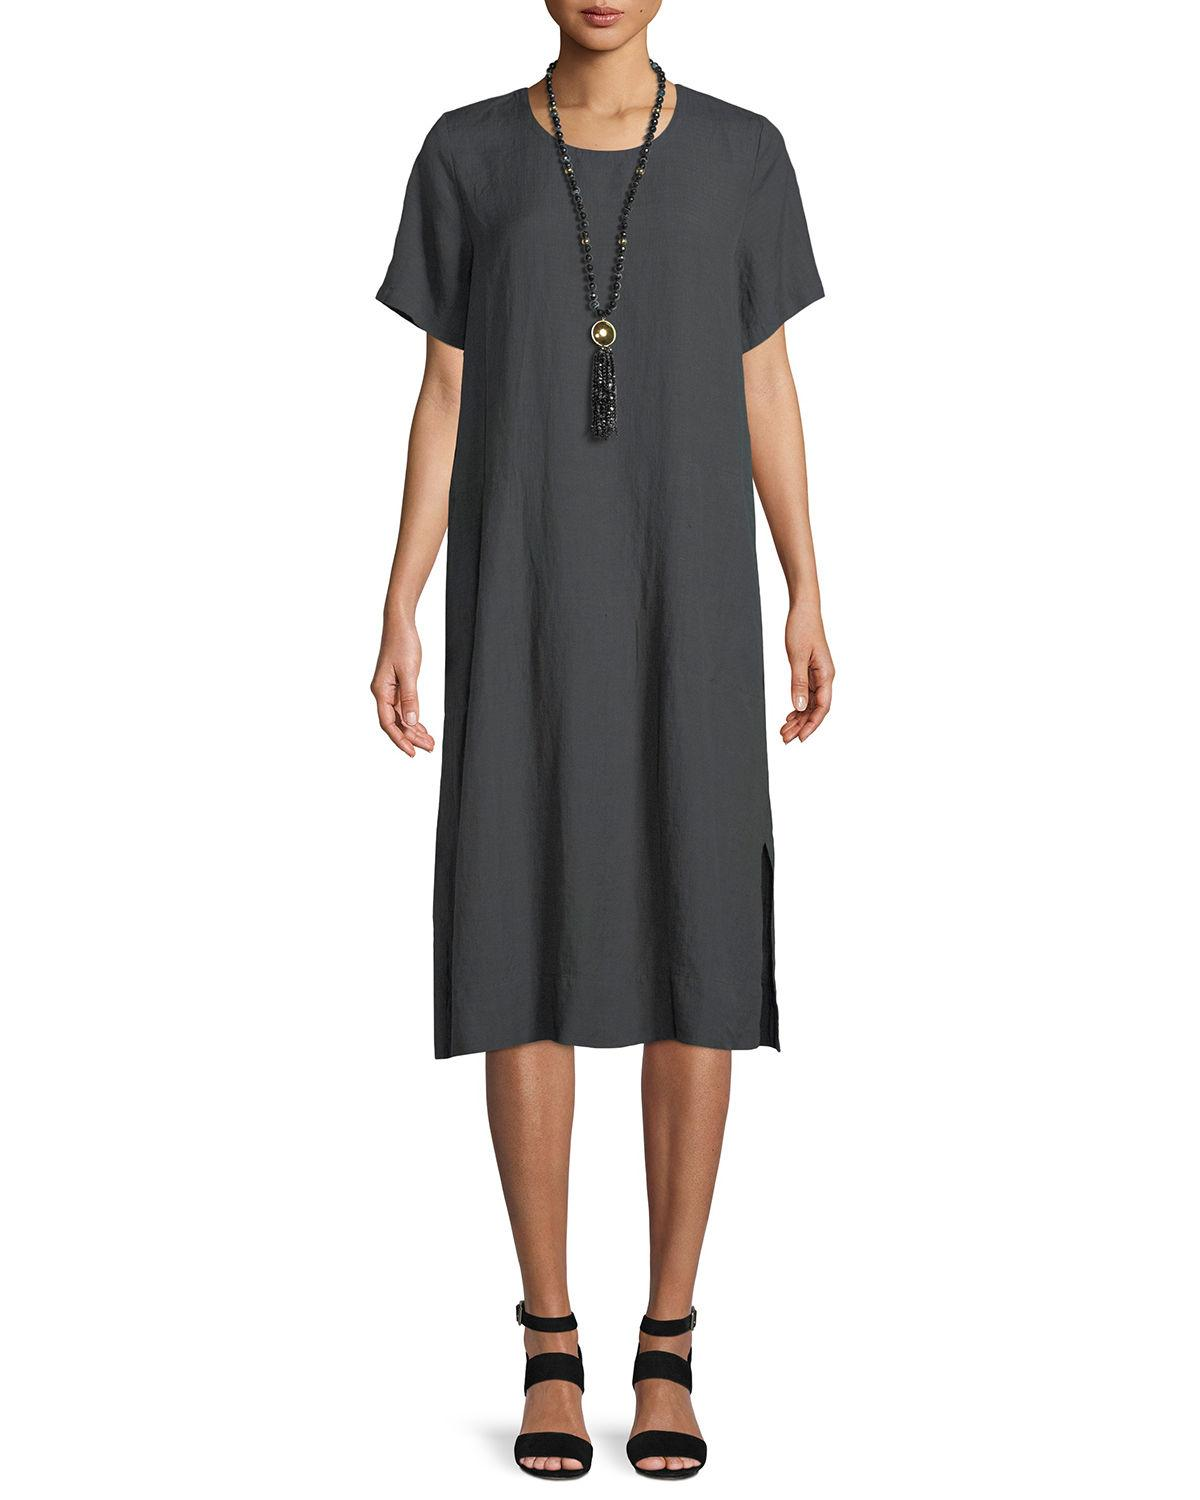 Eileen Fisher Organic Linen-Blend Shift Dress, Plus Size In Dark Gray